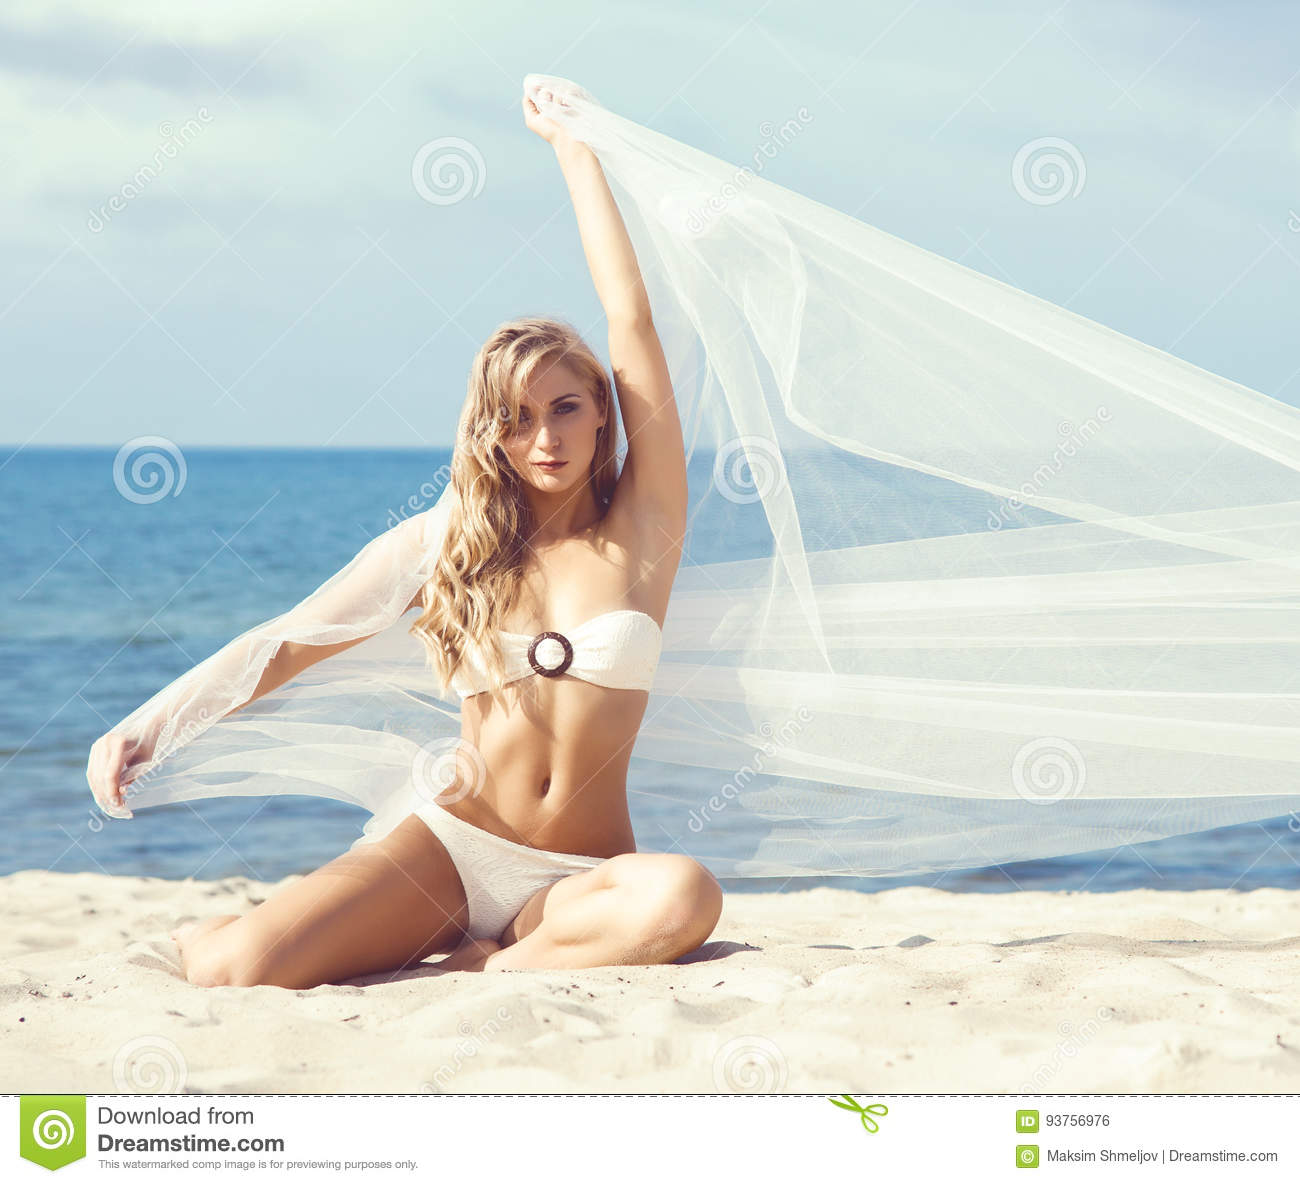 Attractive Slim And Woman In Alluring Bikini Posing With A Blowing Fabric On The Beach Traveling Vacation Concept